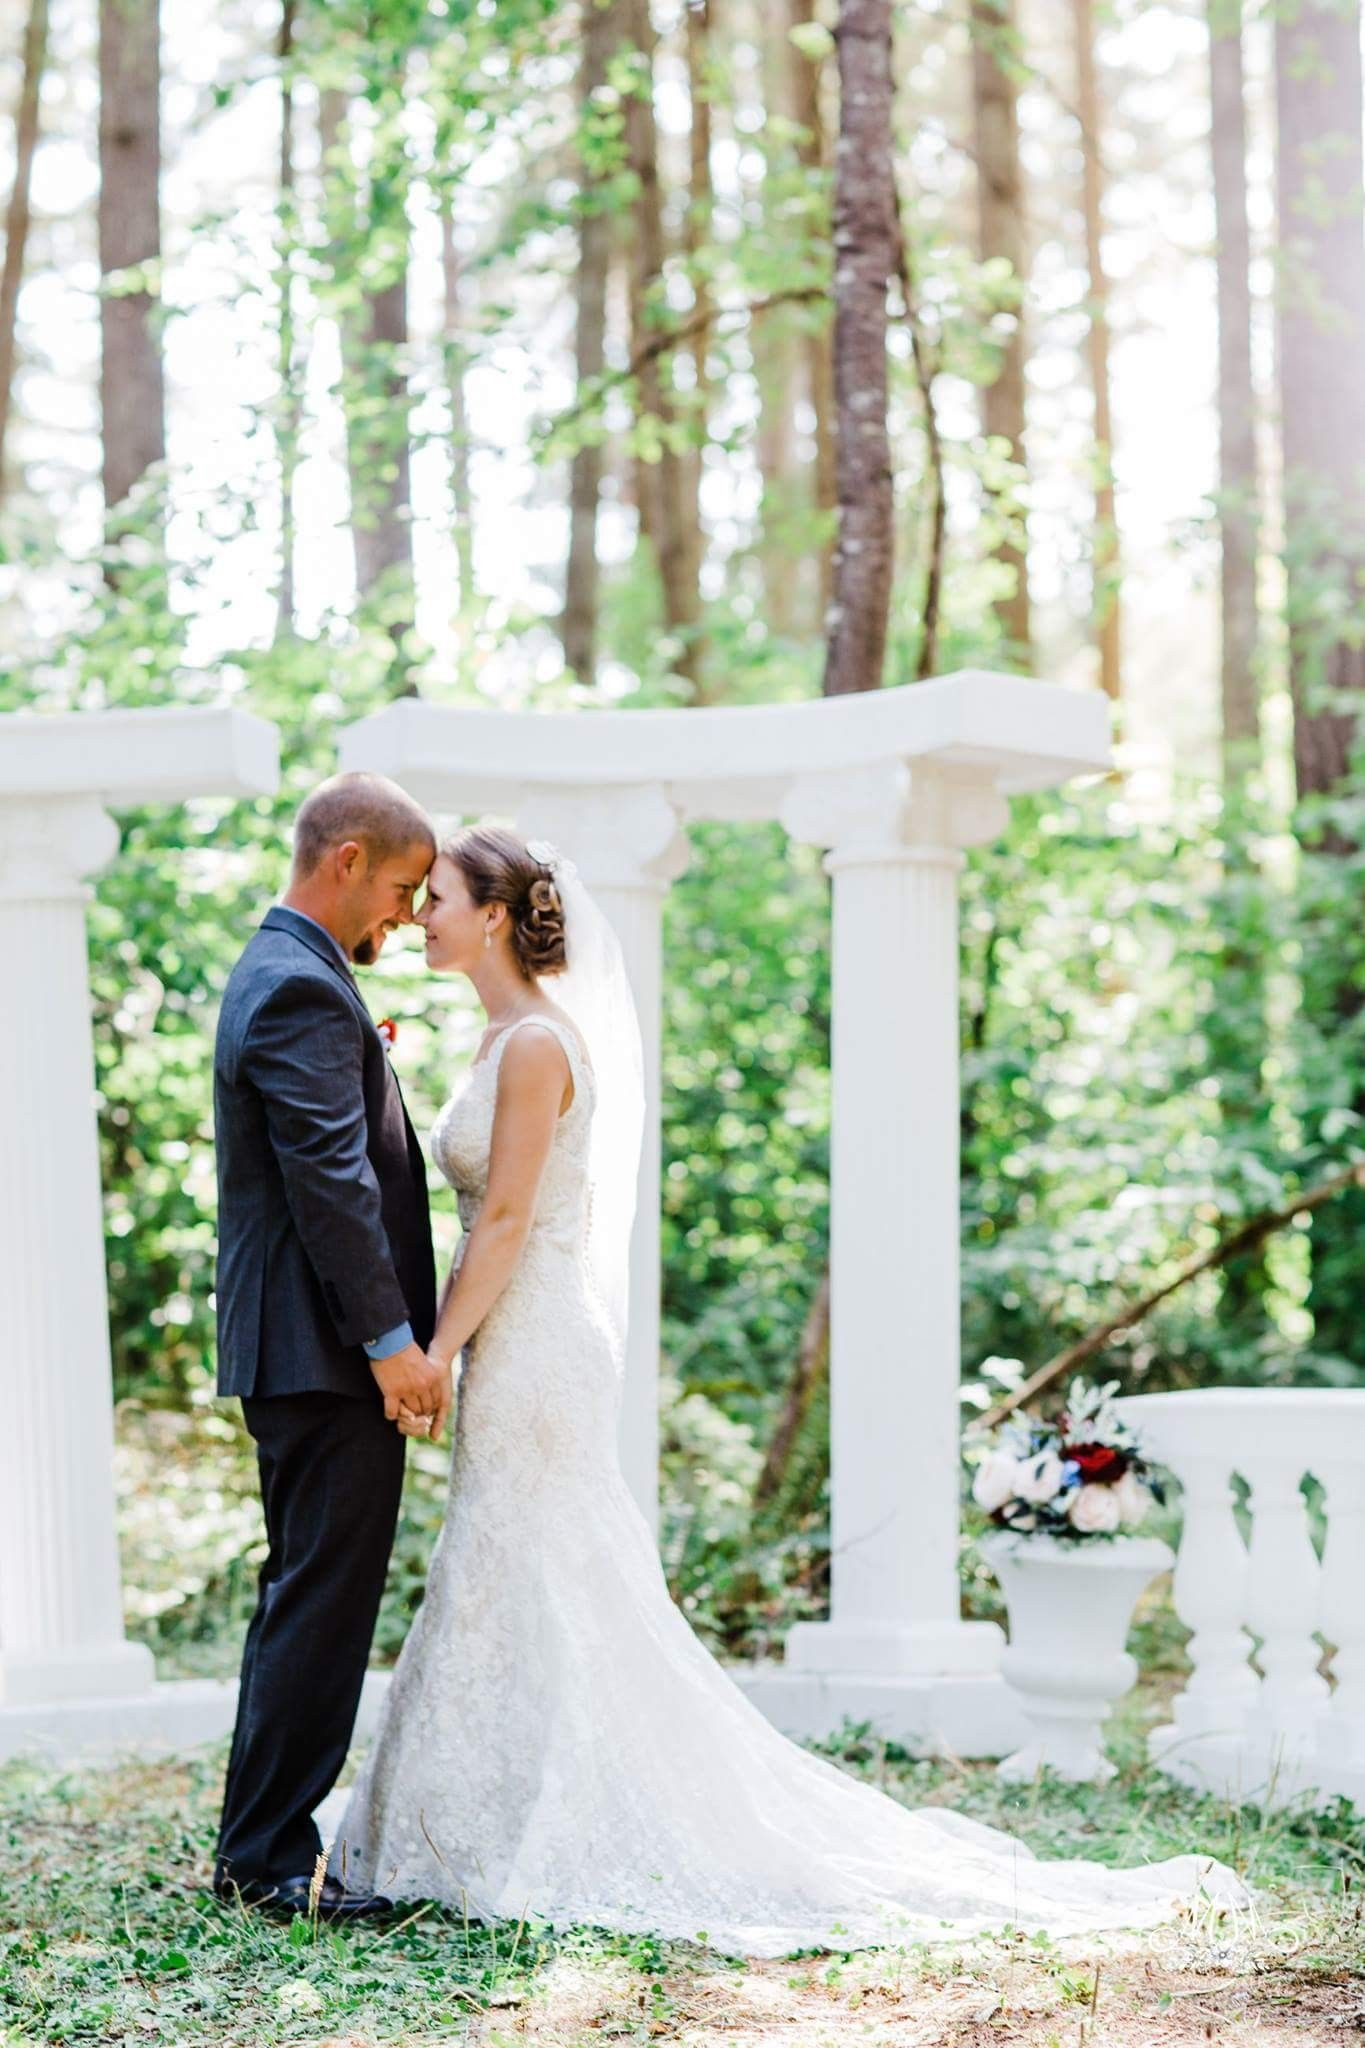 Wedding contests - a trip to a fairy tale